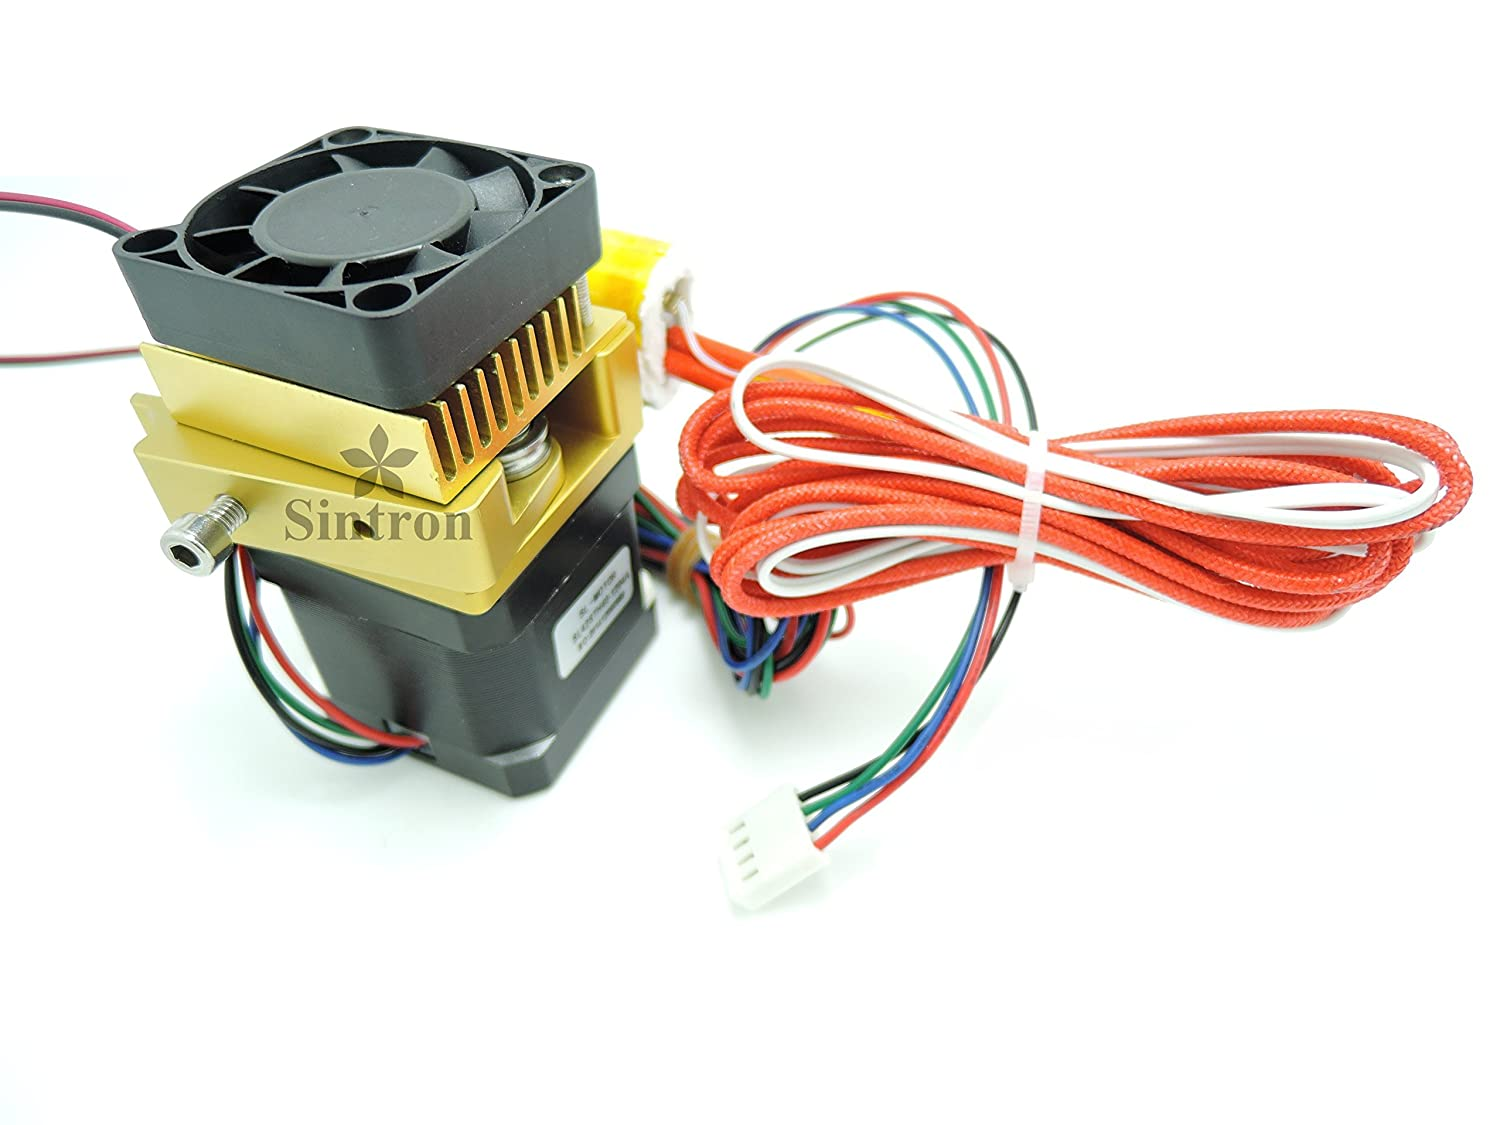 Sintron MK8 Extruder Hotend Nozzle 0.4mm Print Head for 3D Printer Prusa i3